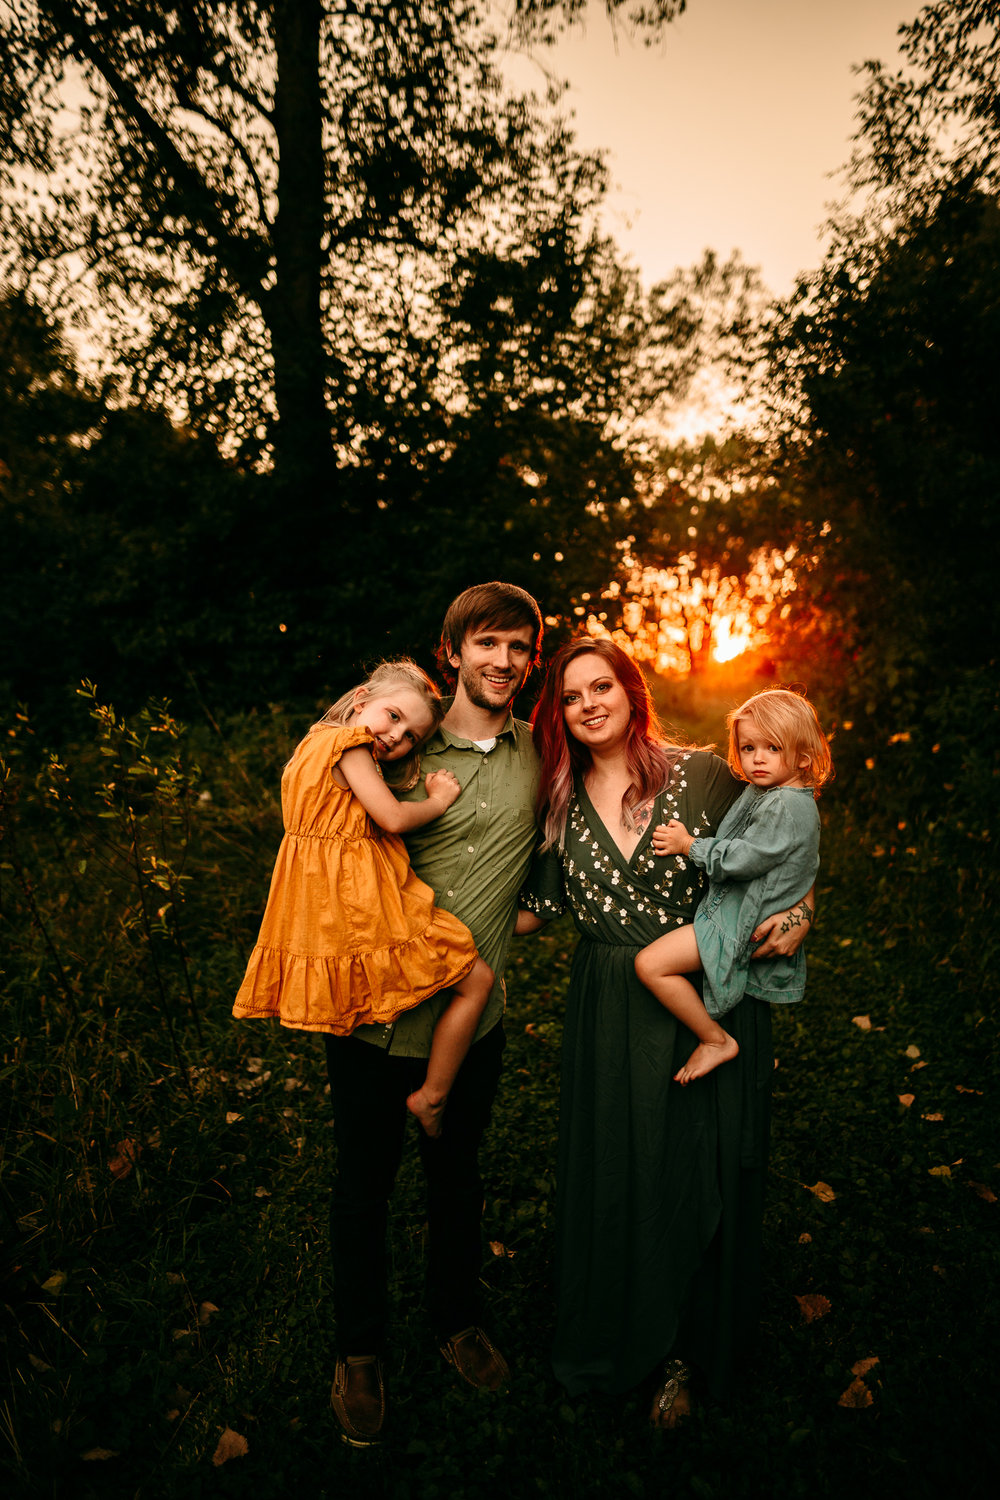 FREESE FAMILY MADE BELOVED PHOTOGRAPHY-47.jpg